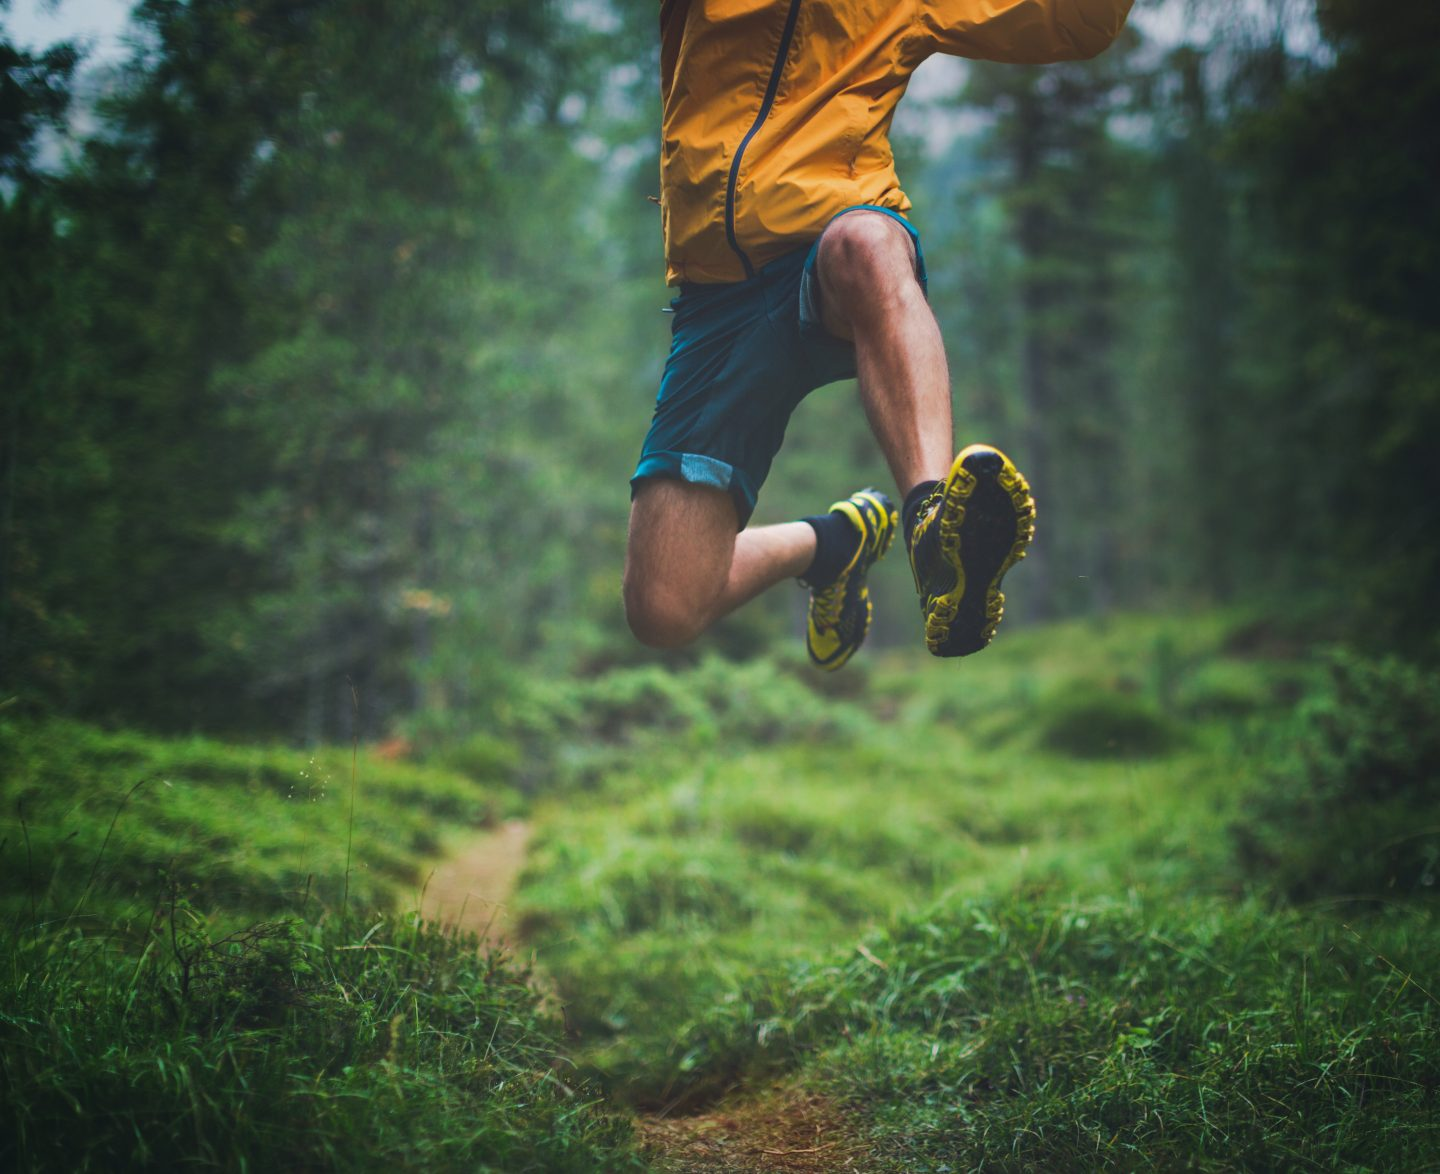 A man exercise trail running in a green and wet forest, jumping over tree roots. running, outdoors, freedom, trail running, health, fitness.